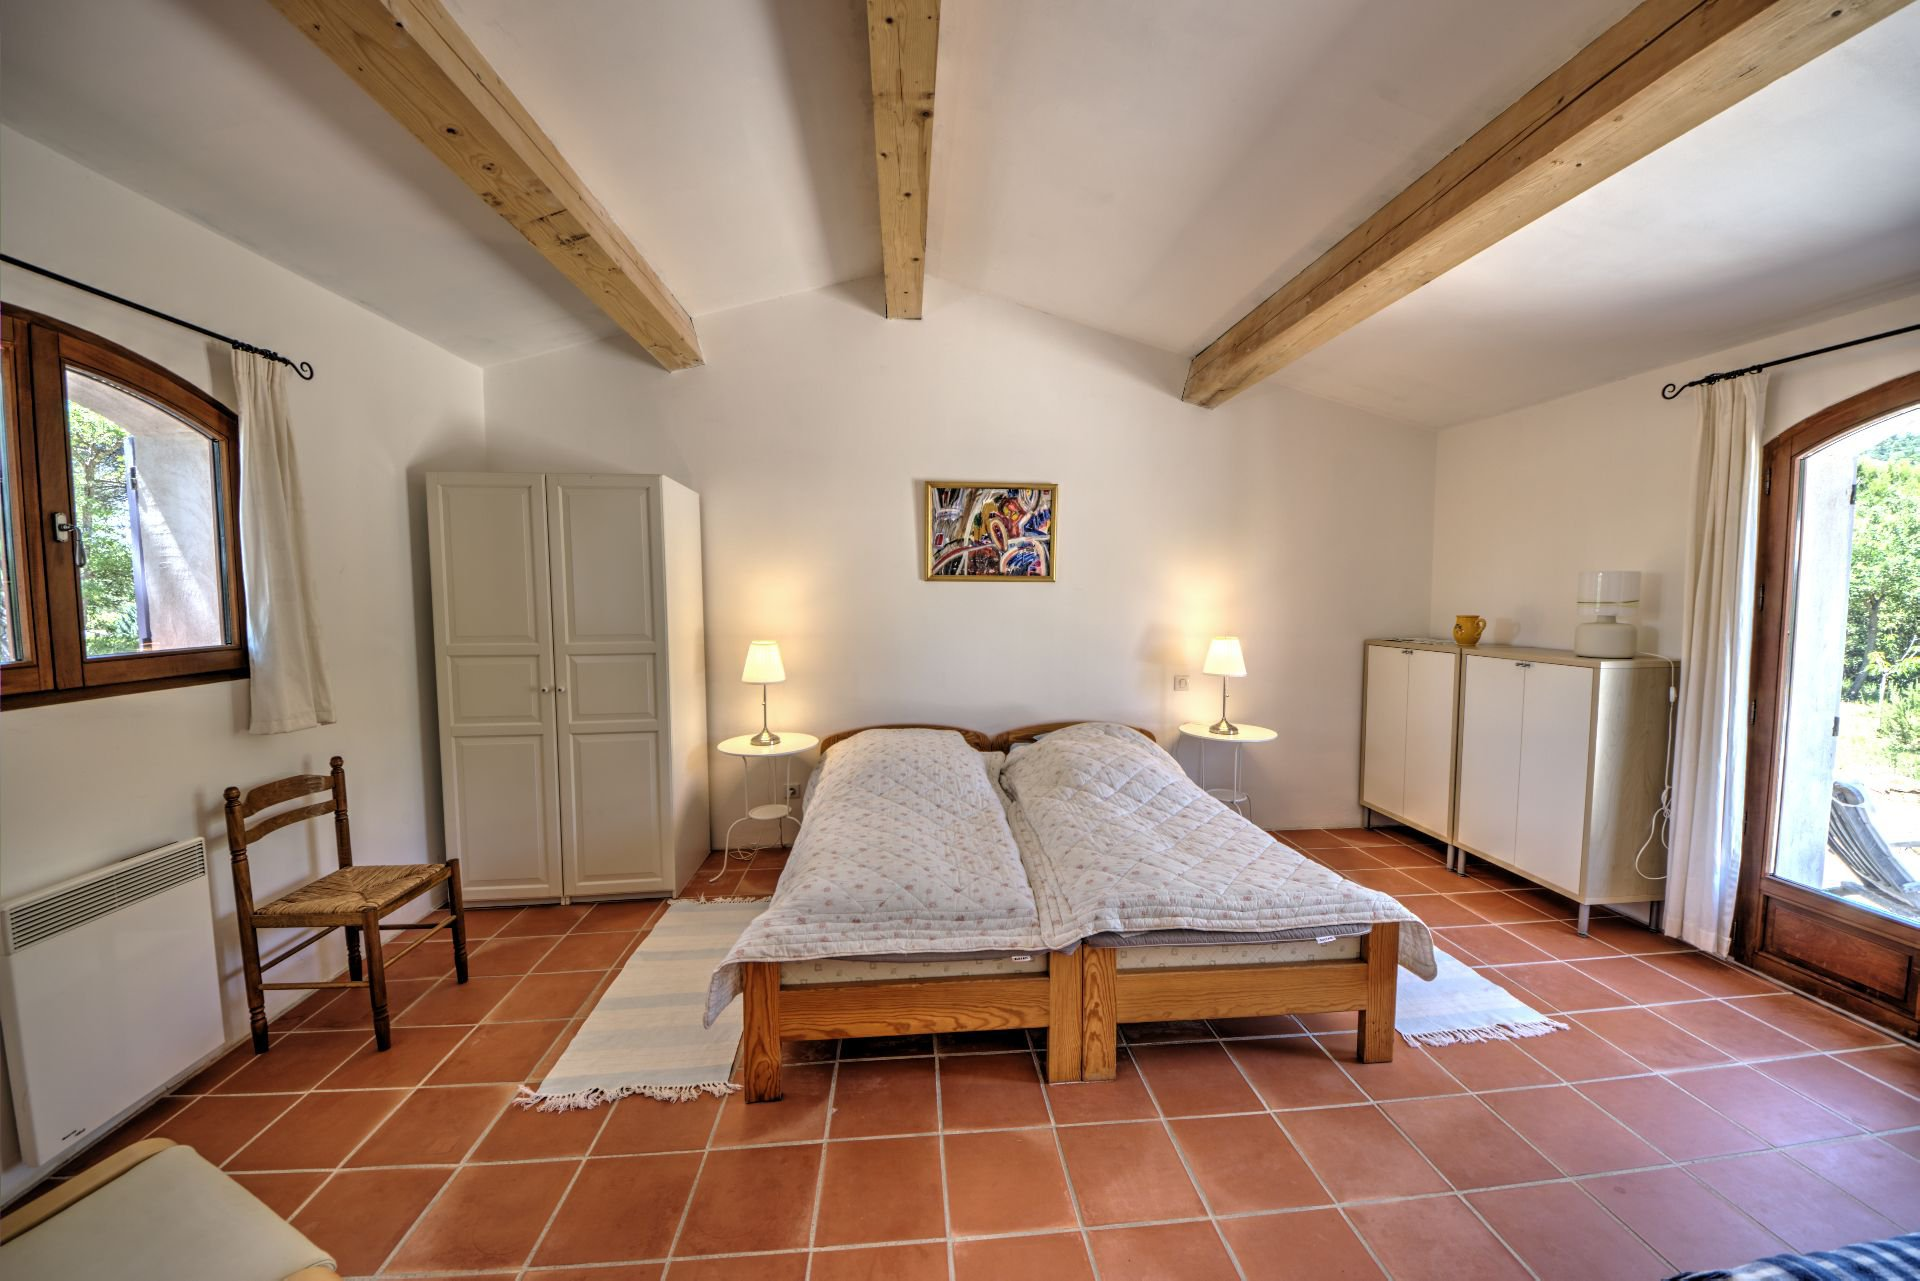 1 bedroom Beautiful villa of 180 sqm, three bedrooms, swimming pool, on 4000 m² closed, Tourtour, Var, Provence